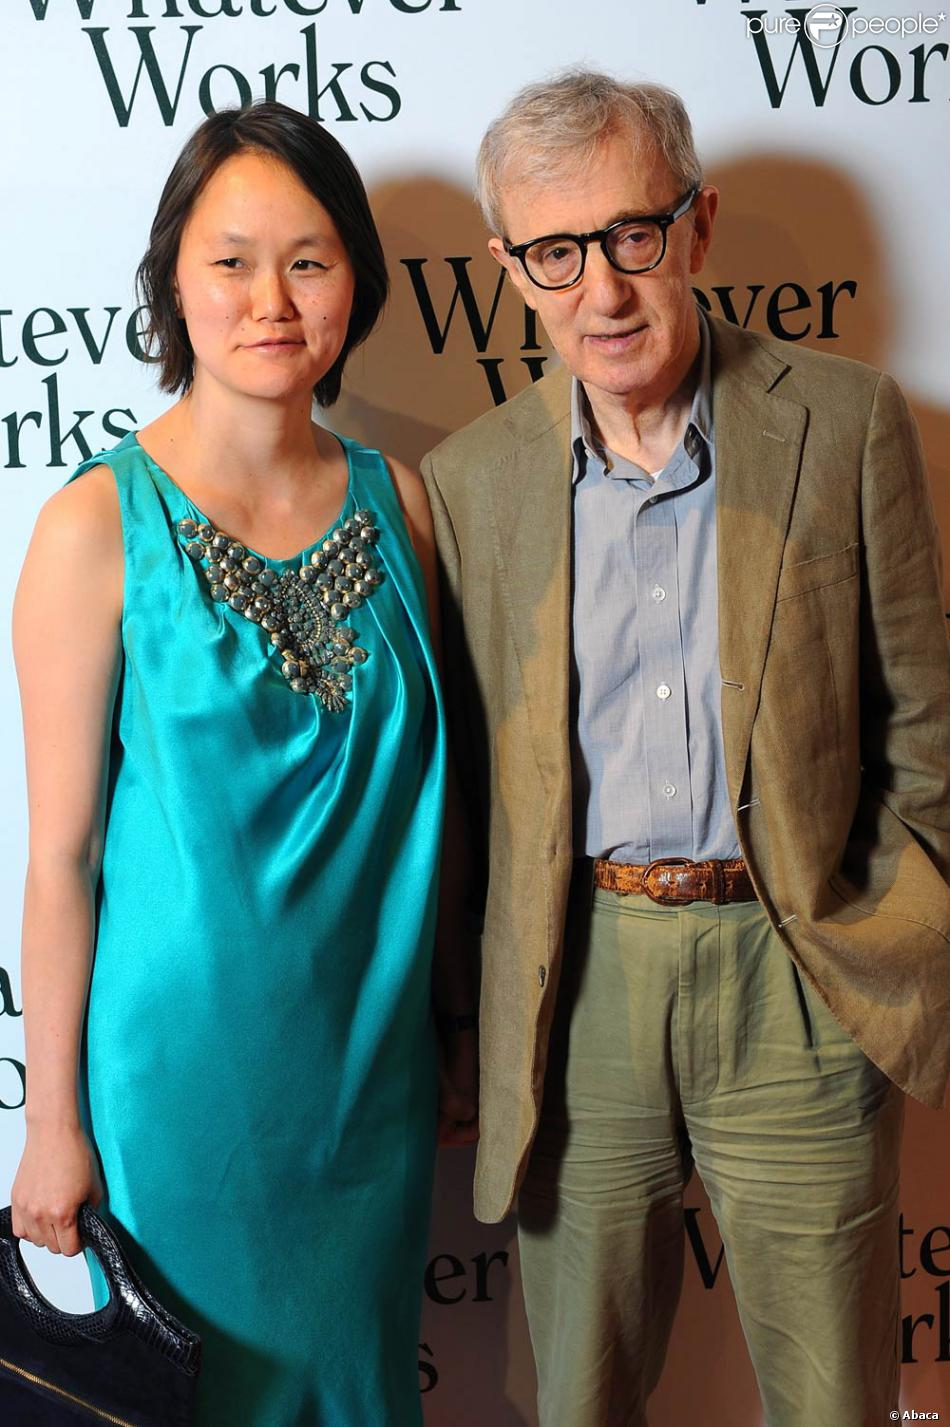 Soon-Yi Previn Speaks Out About Woody Allen Marriage, Mia